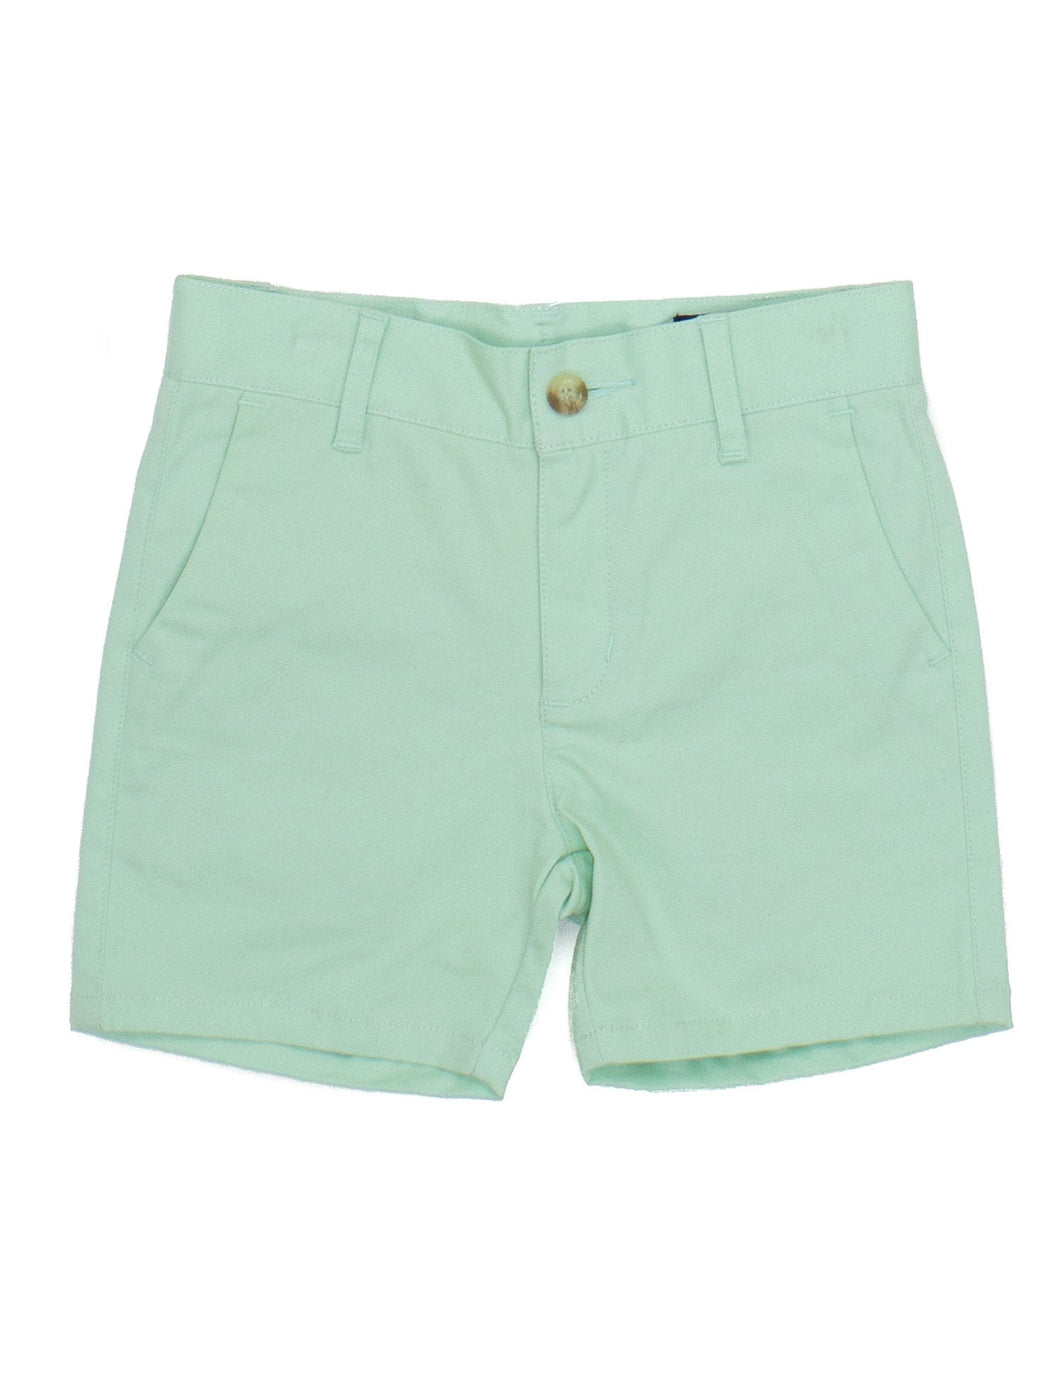 Properly Tied LD Patriot Club Short in Seafoam